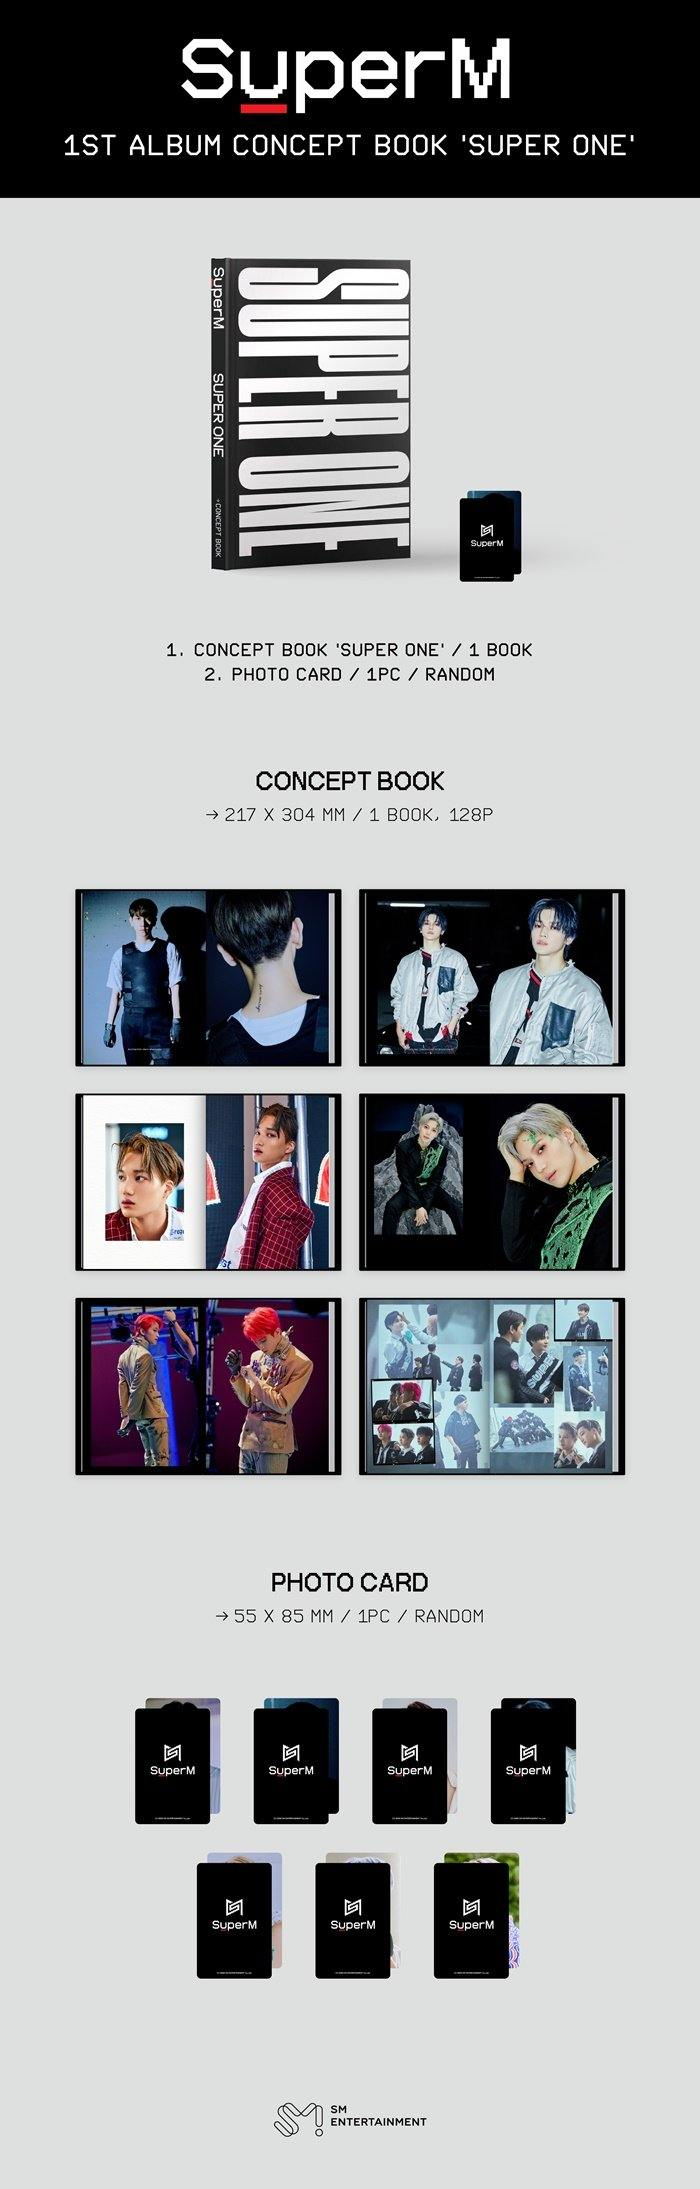 SUPERM - 1ST ALBUM CONCEPT BOOK [SUPER ONE]